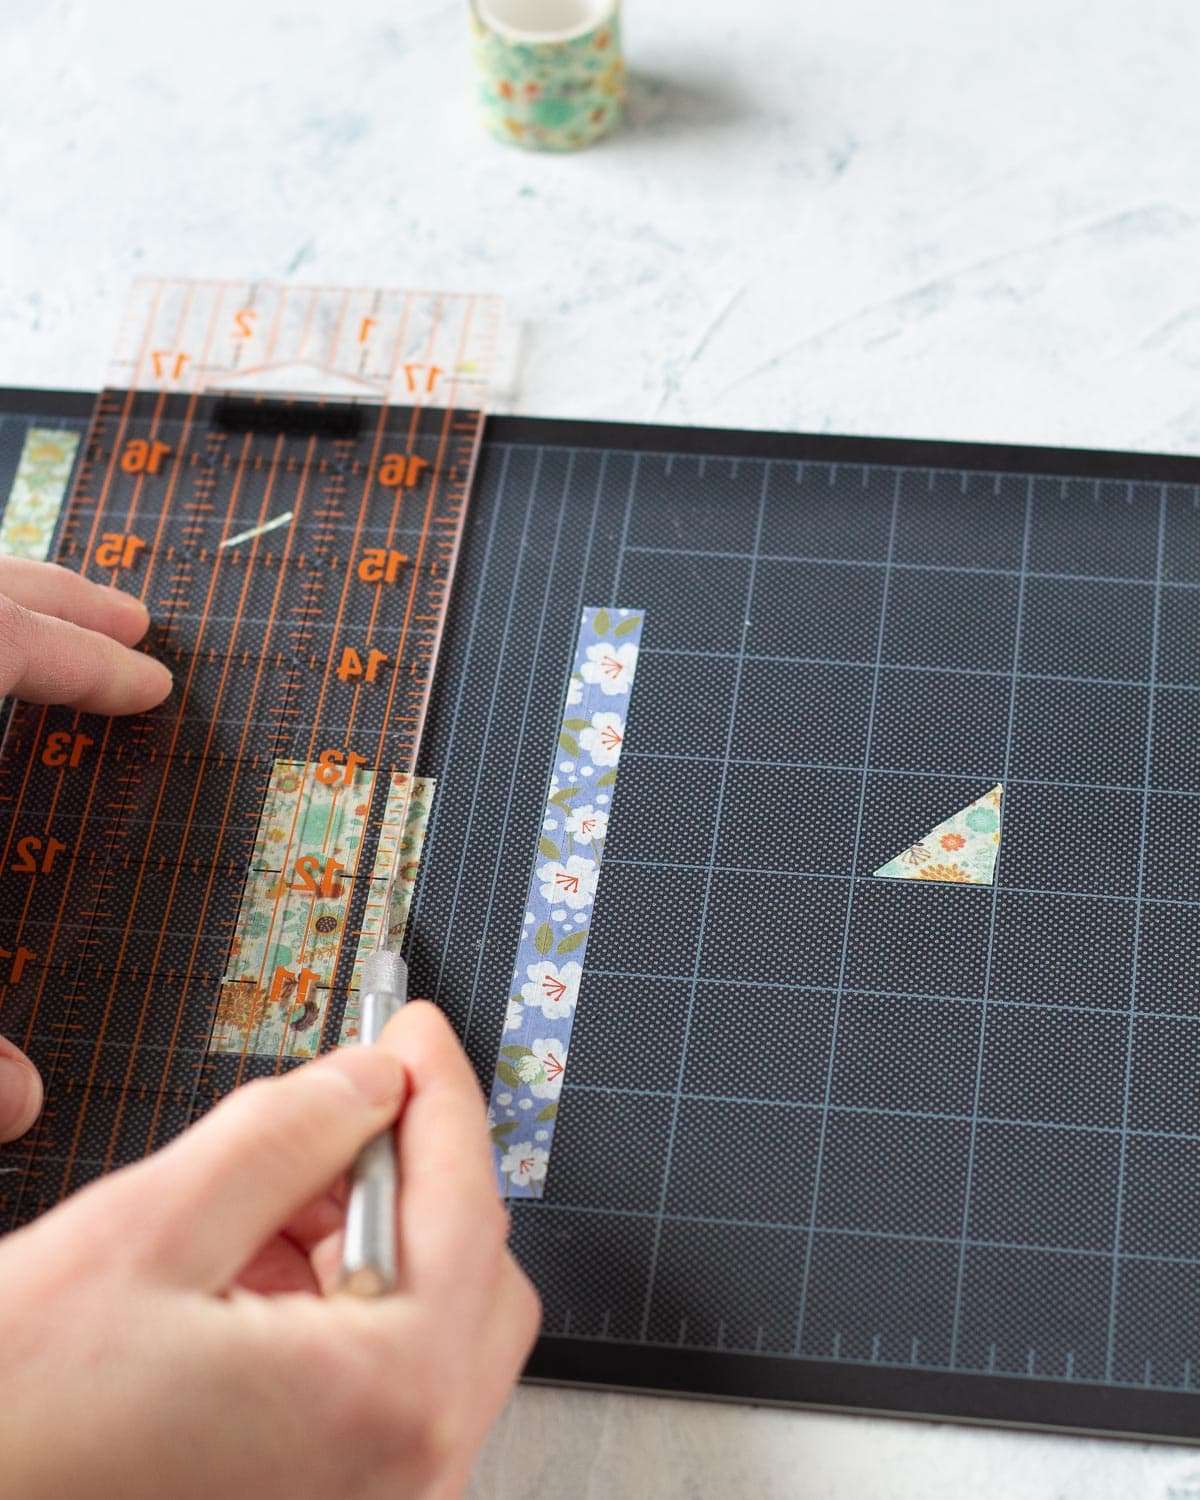 Using a cutting mat, ruler, and a craft knife to cut washi tape into thin strips.